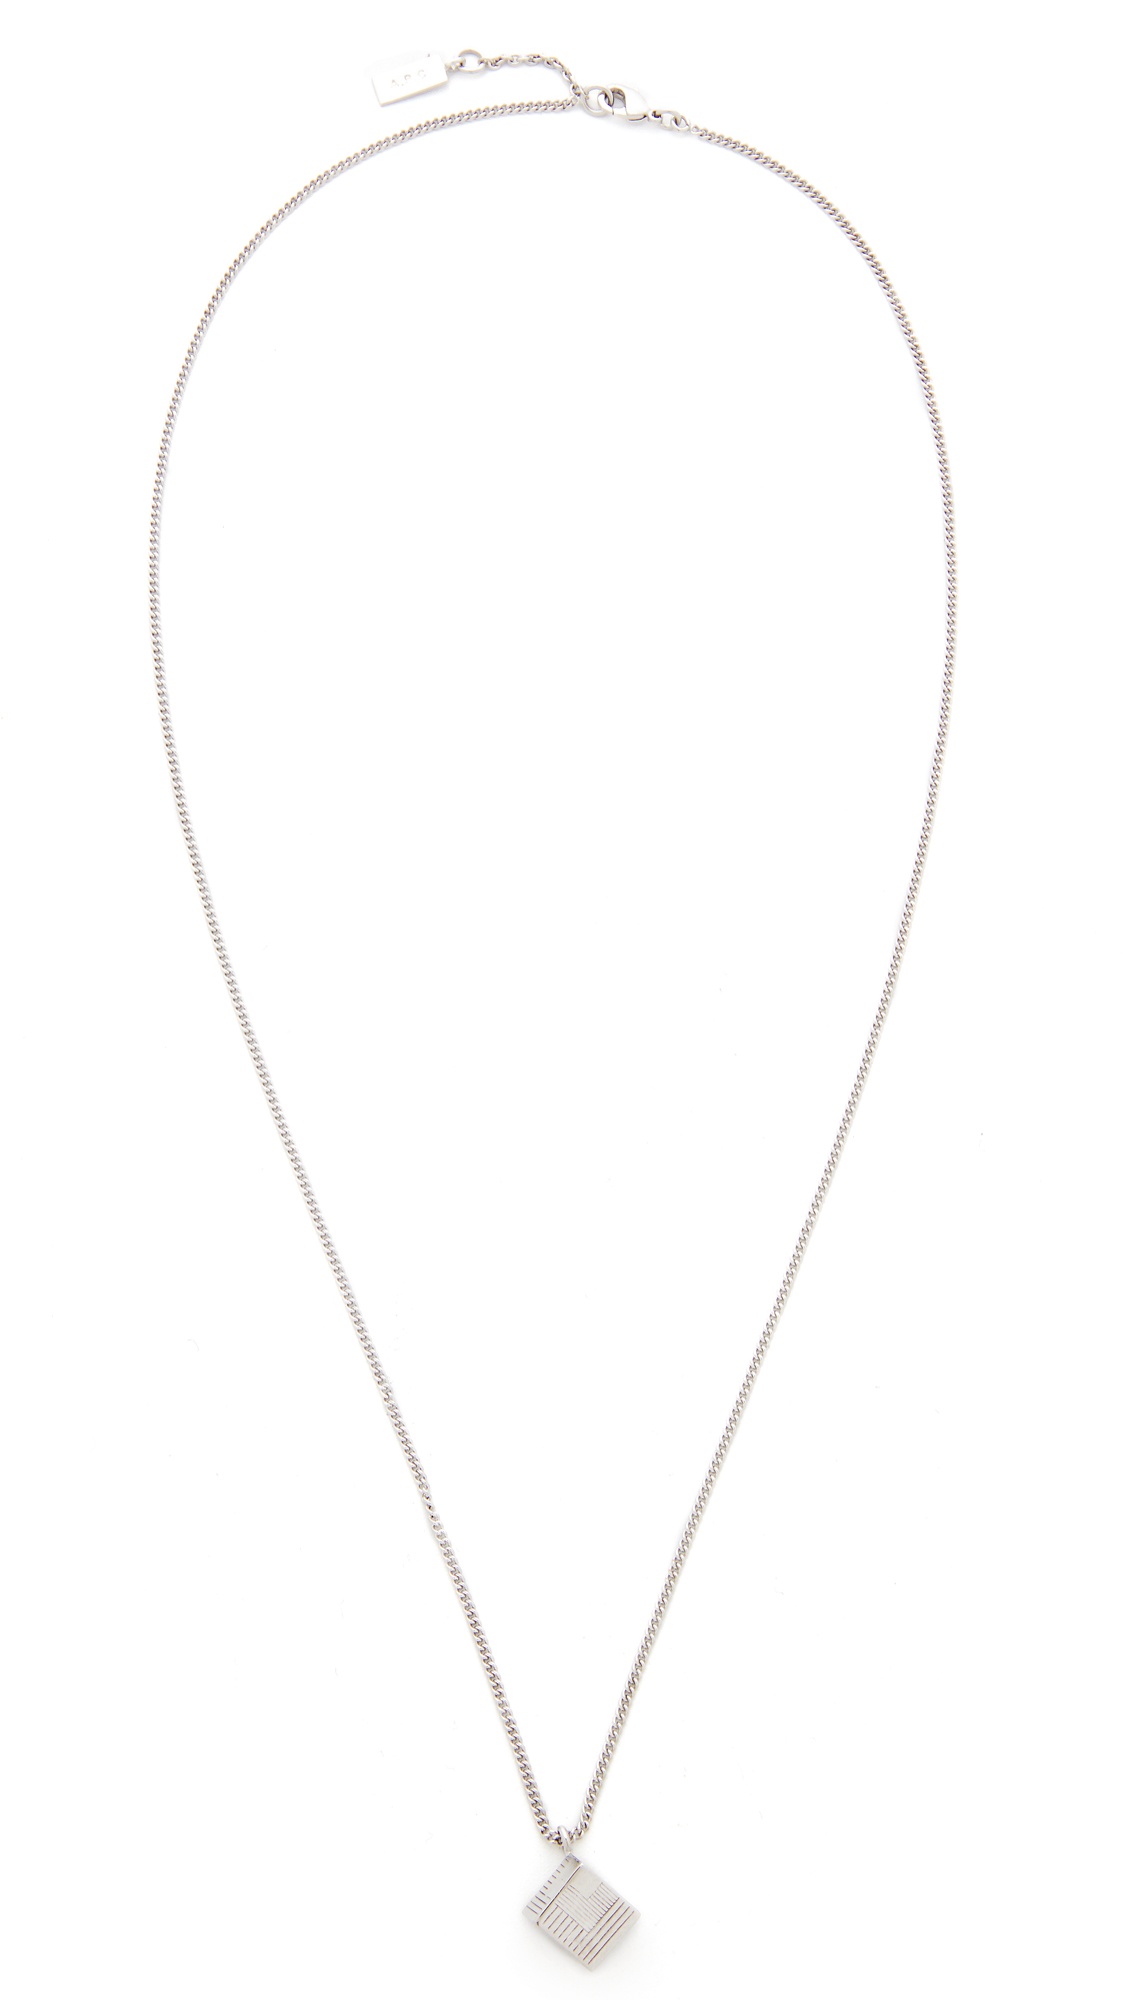 white views tessa melinda tessamarquisglb jewelry other cz gold apc marquis necklace labradorite maria